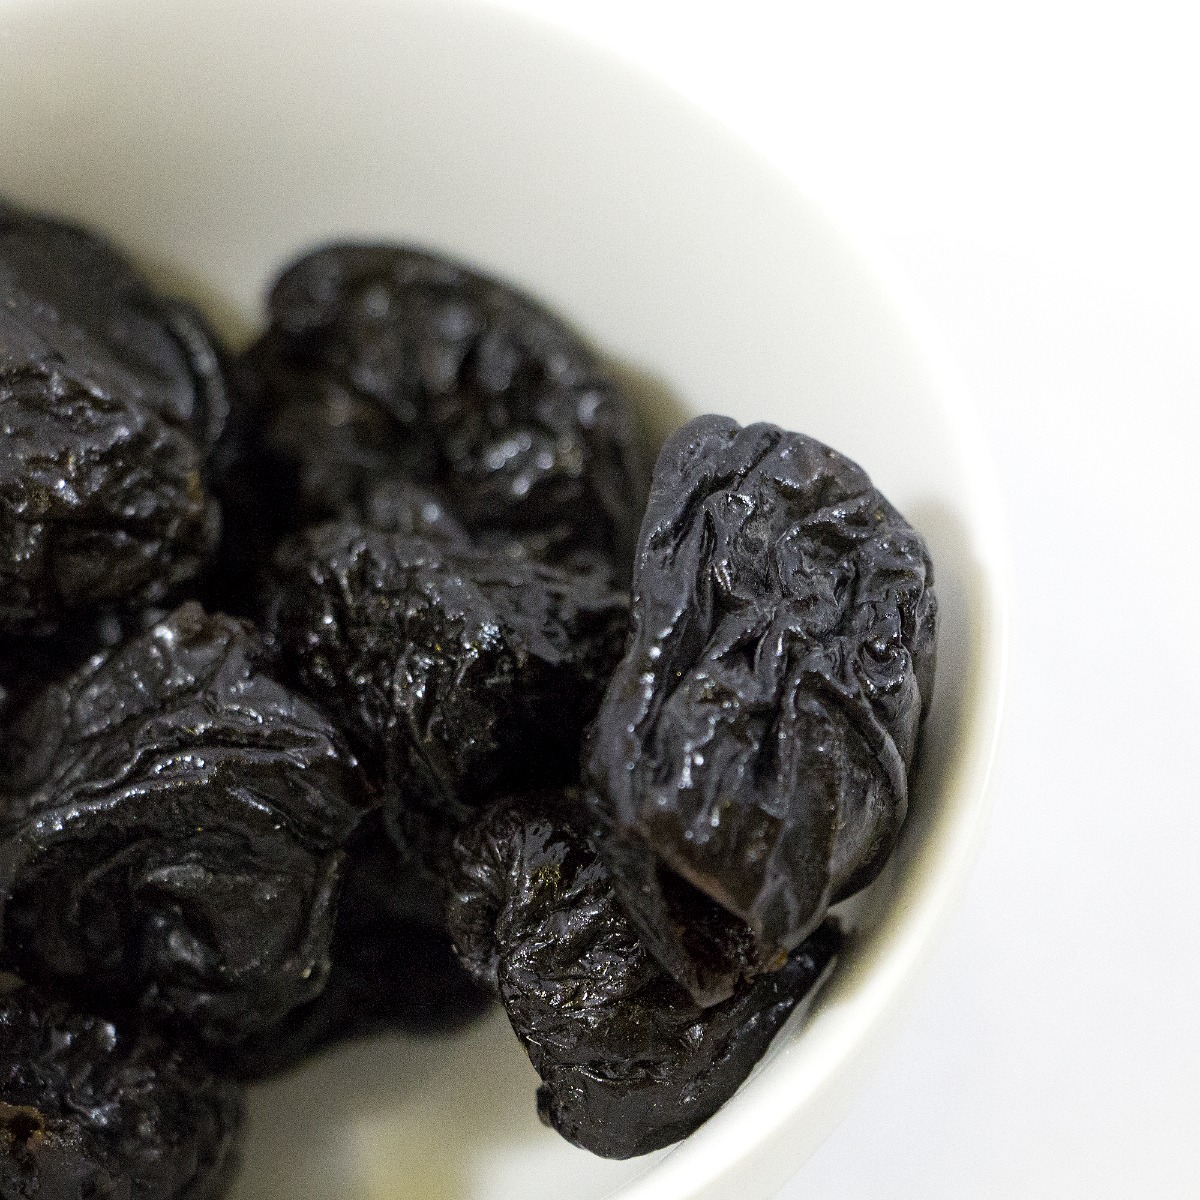 Real • Organic Pitted Prunes